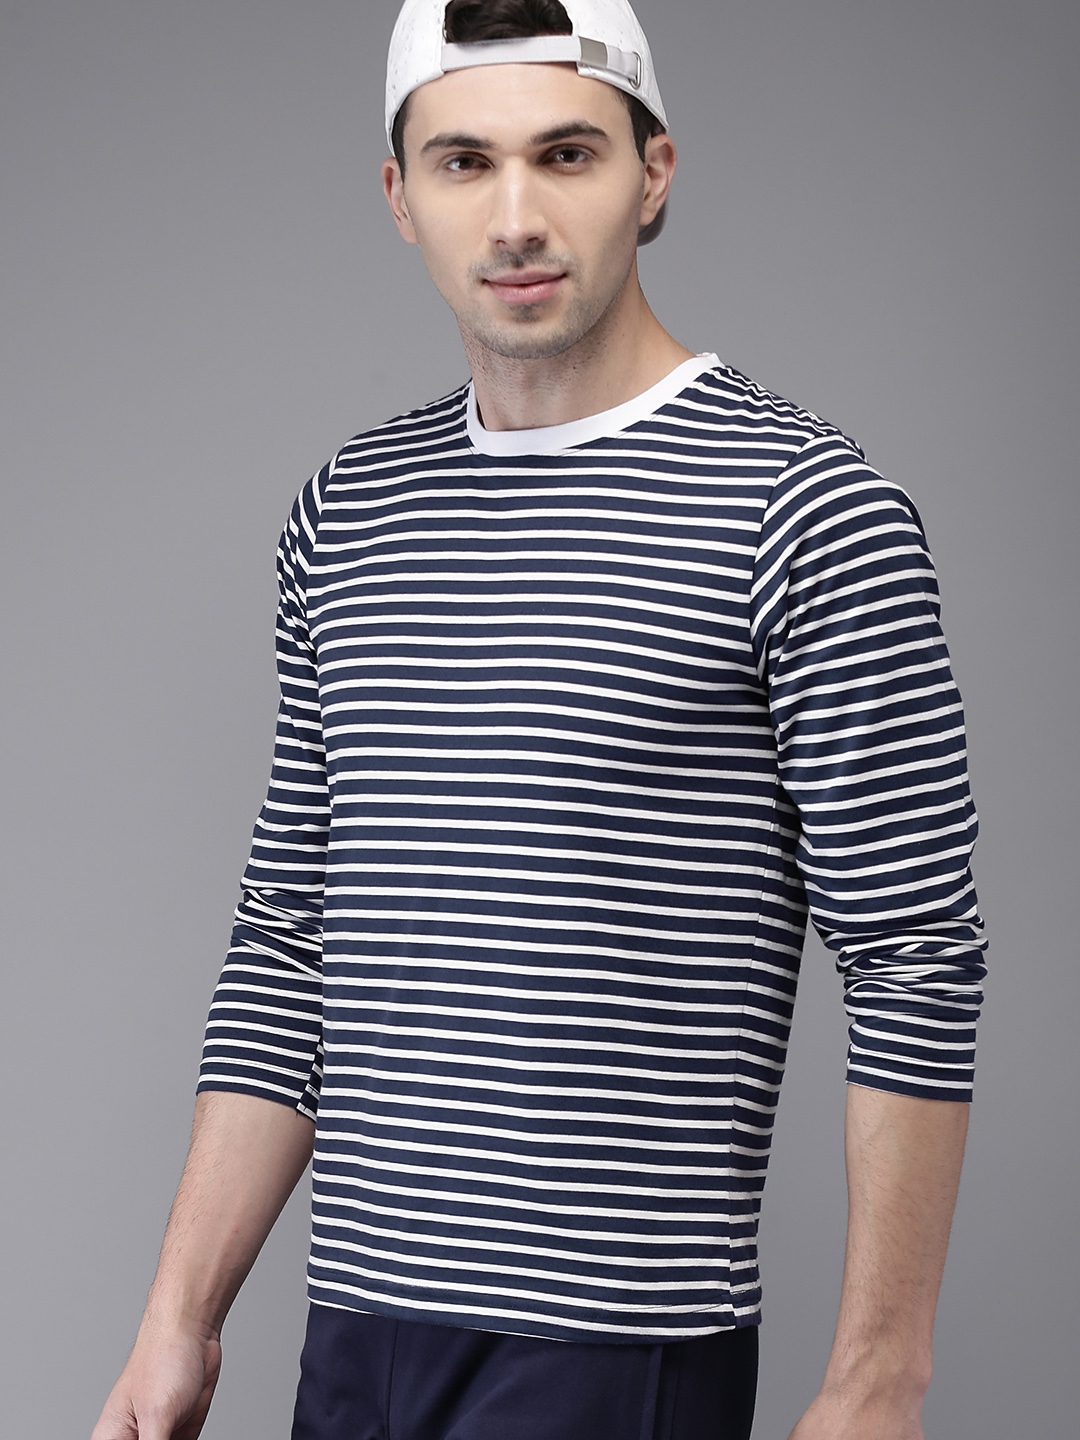 53dc8c93b48 Buy HERE NOW Men Navy Blue   White Striped Round Neck T Shirt ...